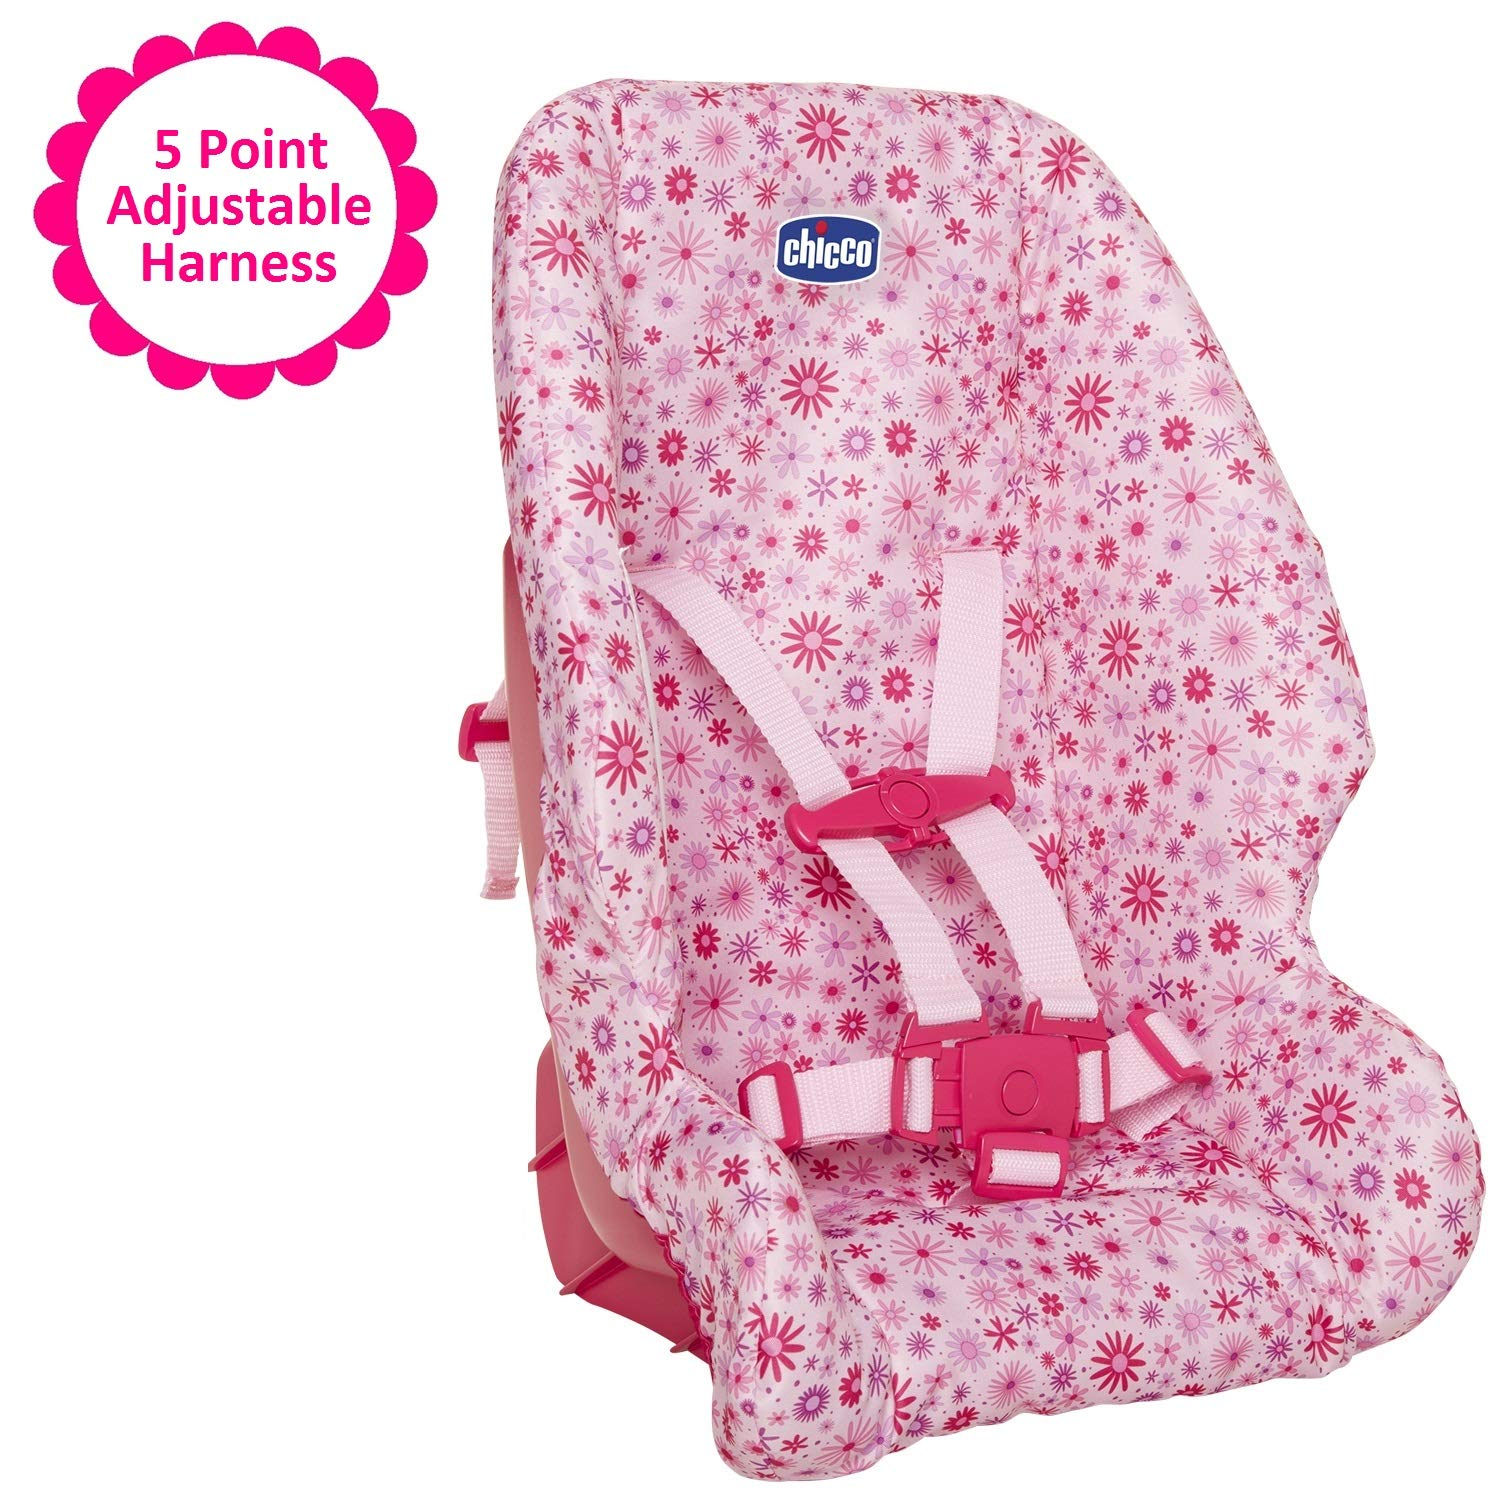 Baby Doll Car Booster Seat by Chicco, For Baby Dolls Up To 18 Inches Tall, For Girls ages 3, 4, and 5 Years Old, Perfect Gift for Birthday Christmas or Hanukkah by Chicco